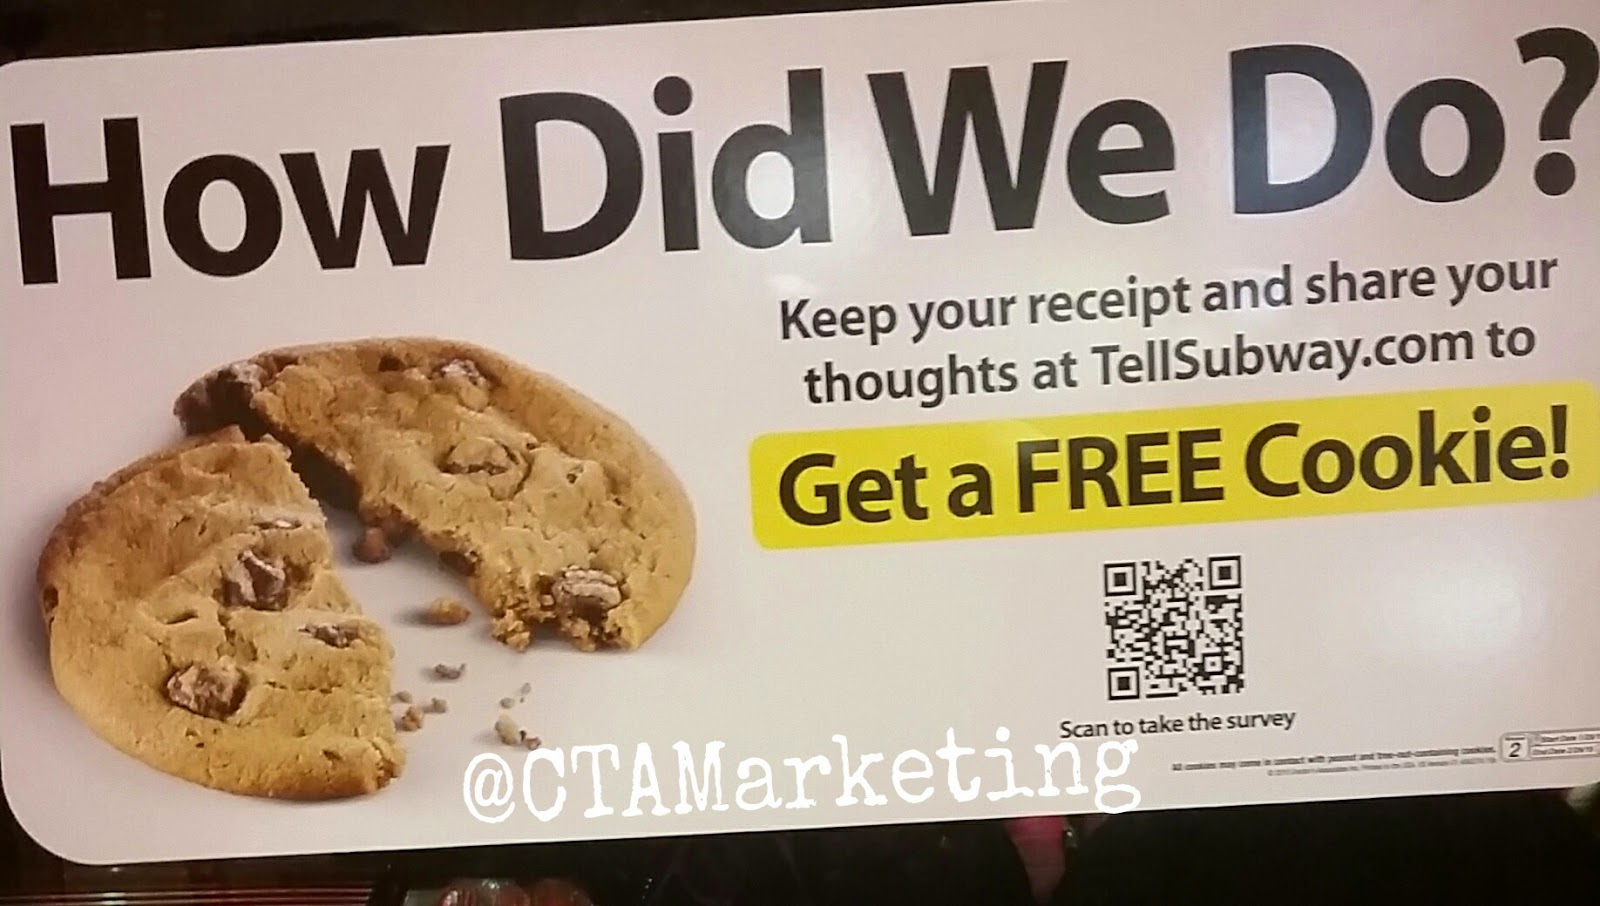 subway restaurants qr code gets you a free cookie mobile marketing